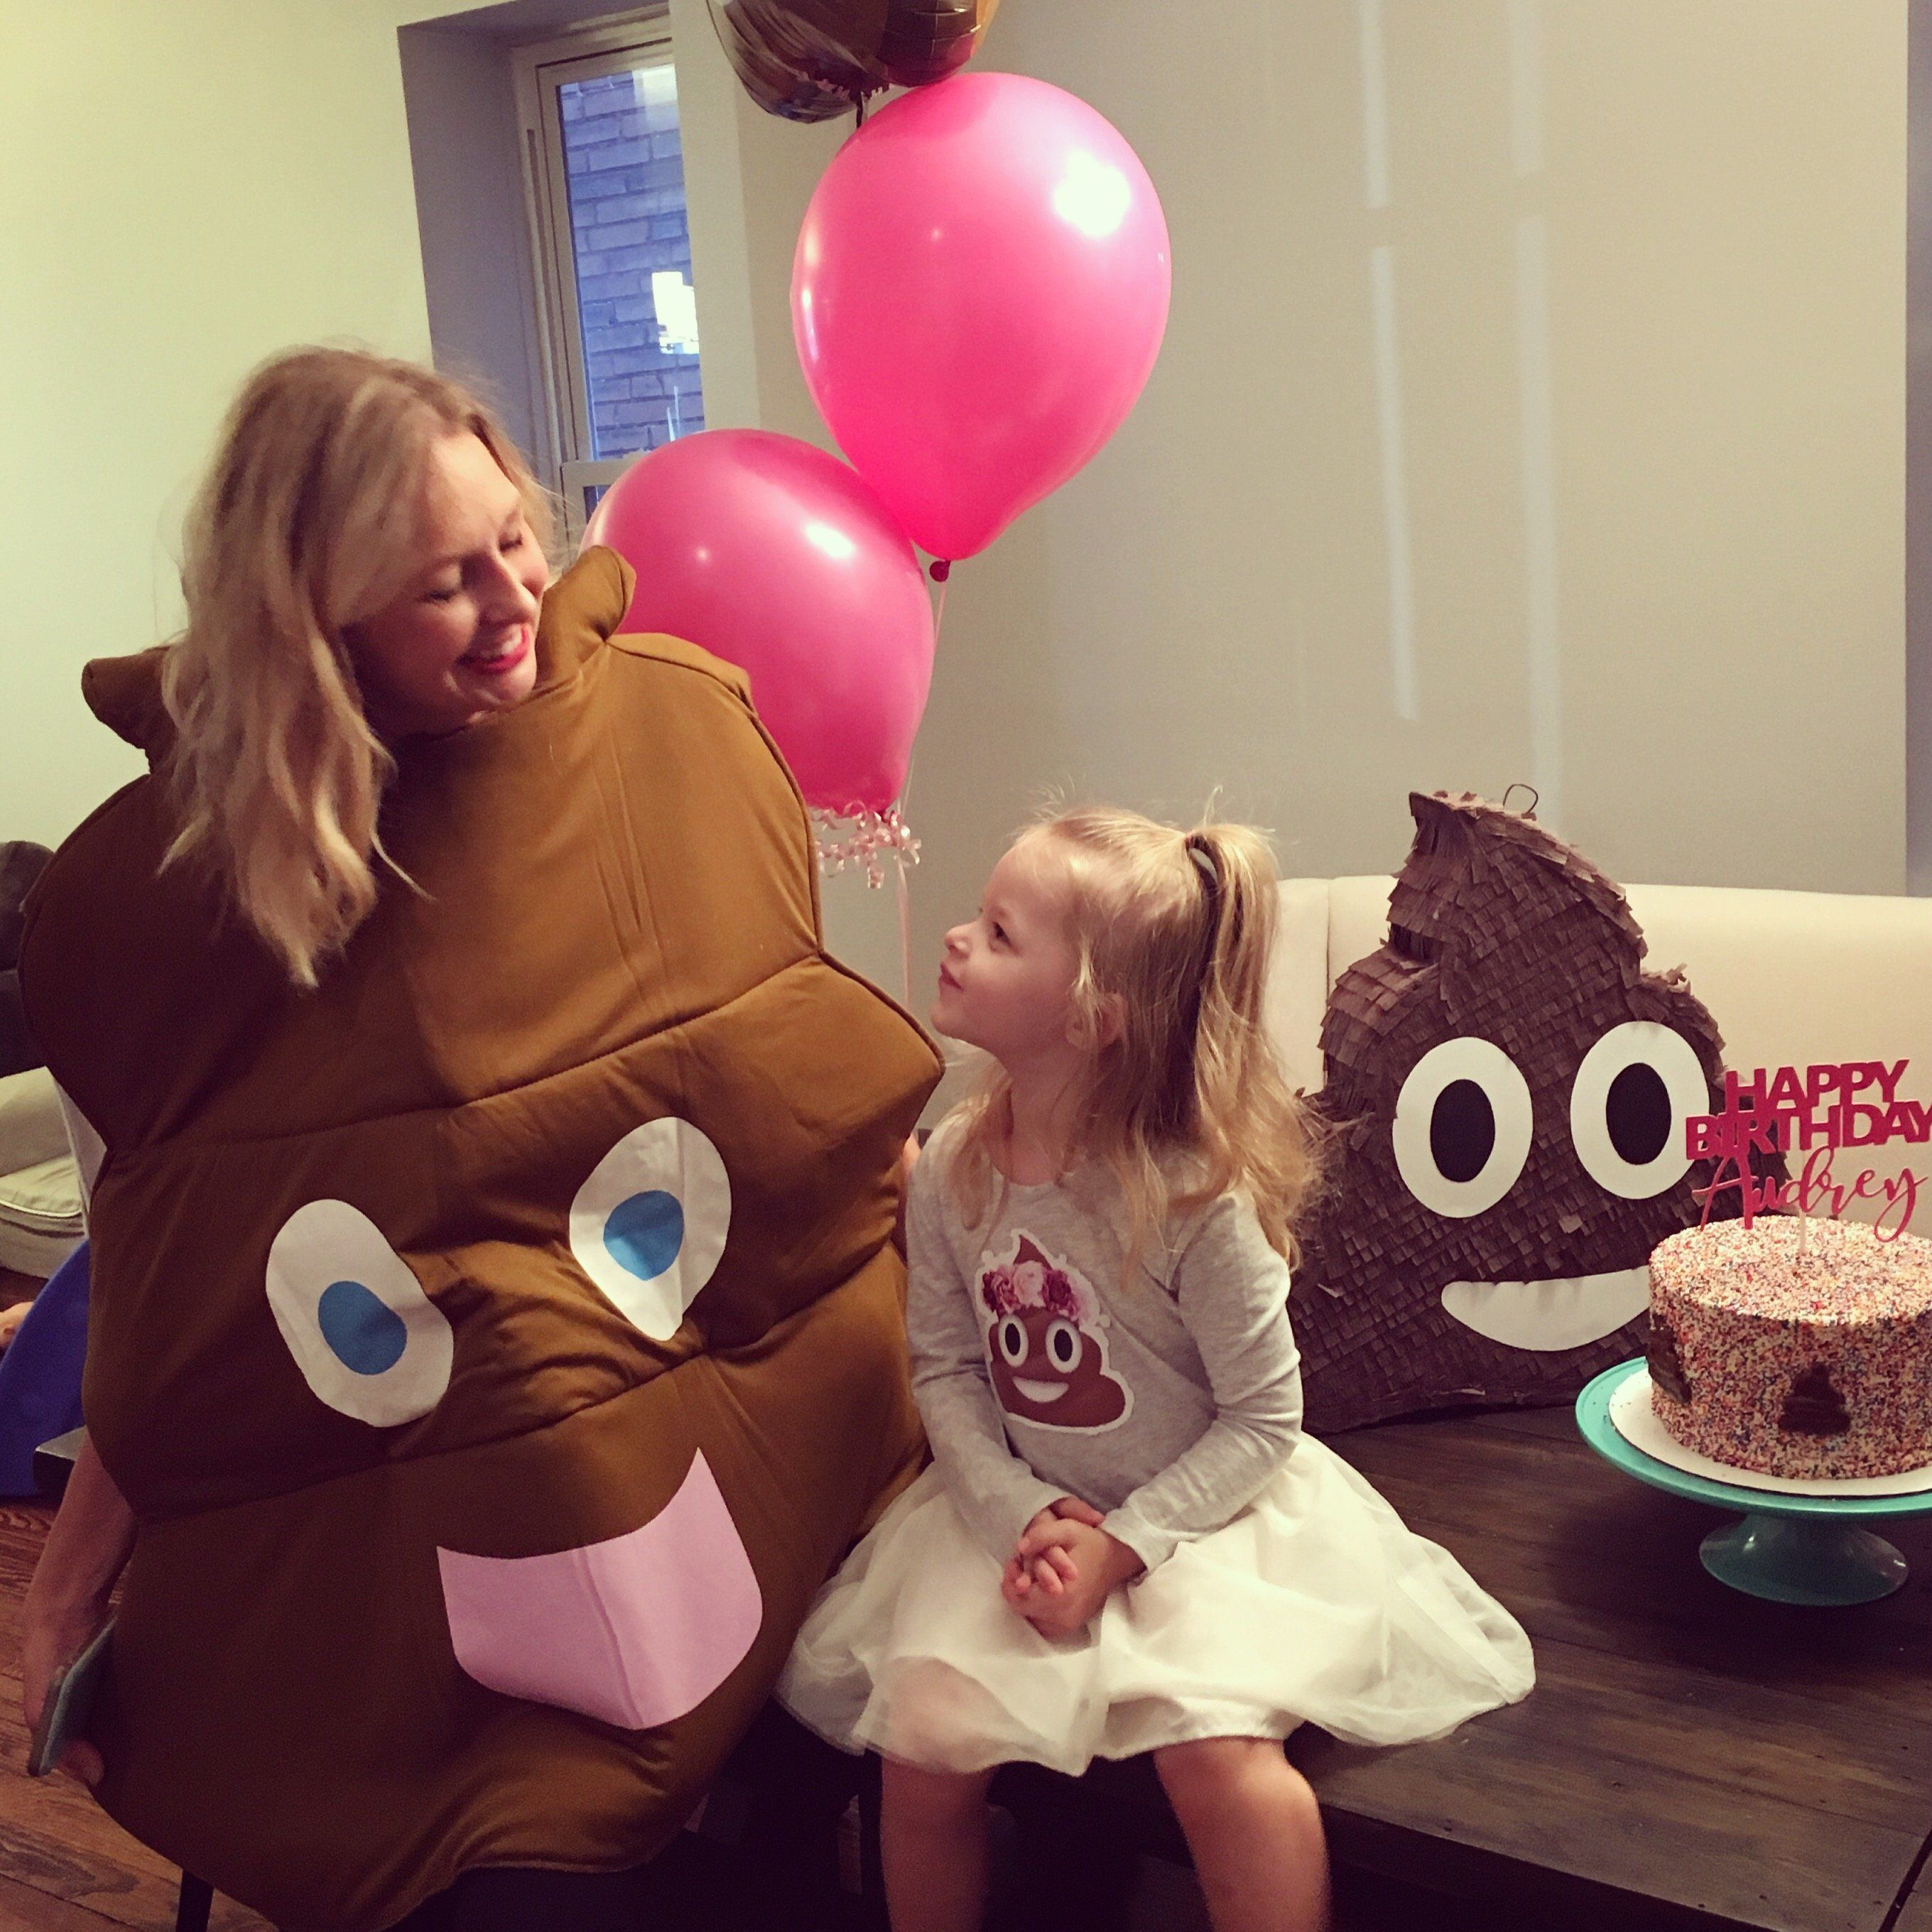 American Balloon Company Emoji Poop Balloon Bouquet with Ribbon